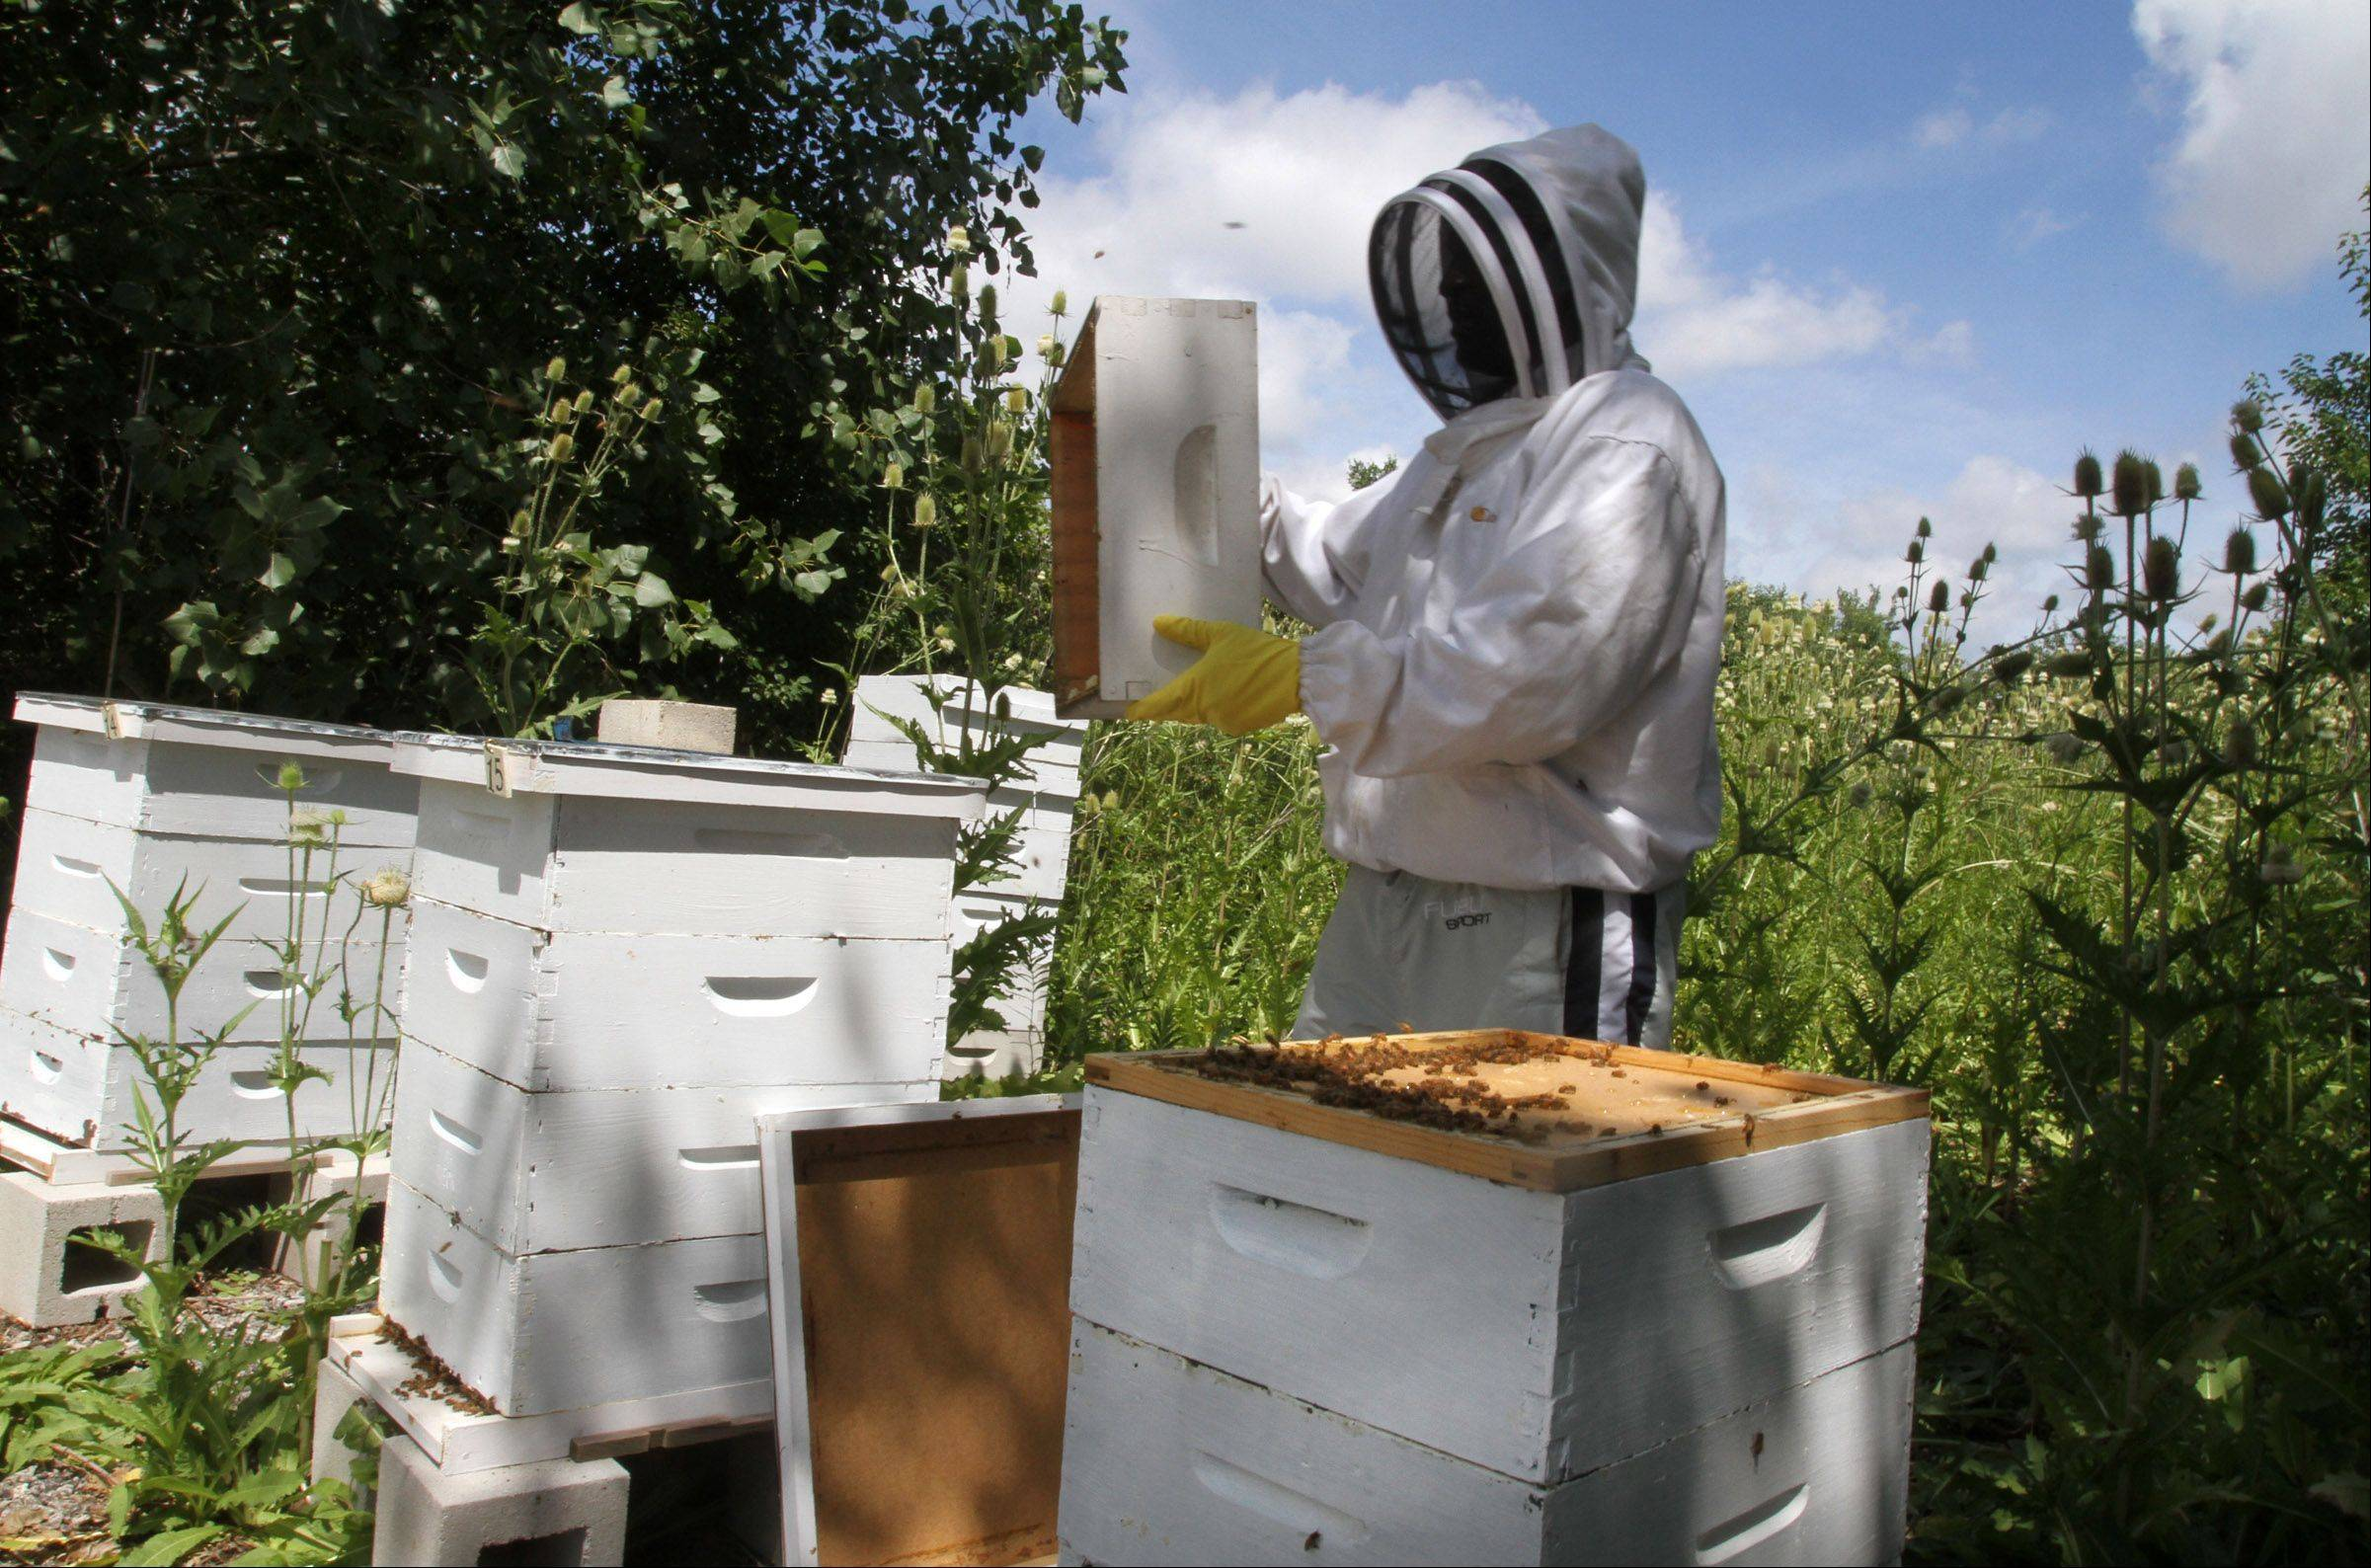 Curtis Camp, Sweet Beginnings team member, works the hives at O'Hare International Airport.